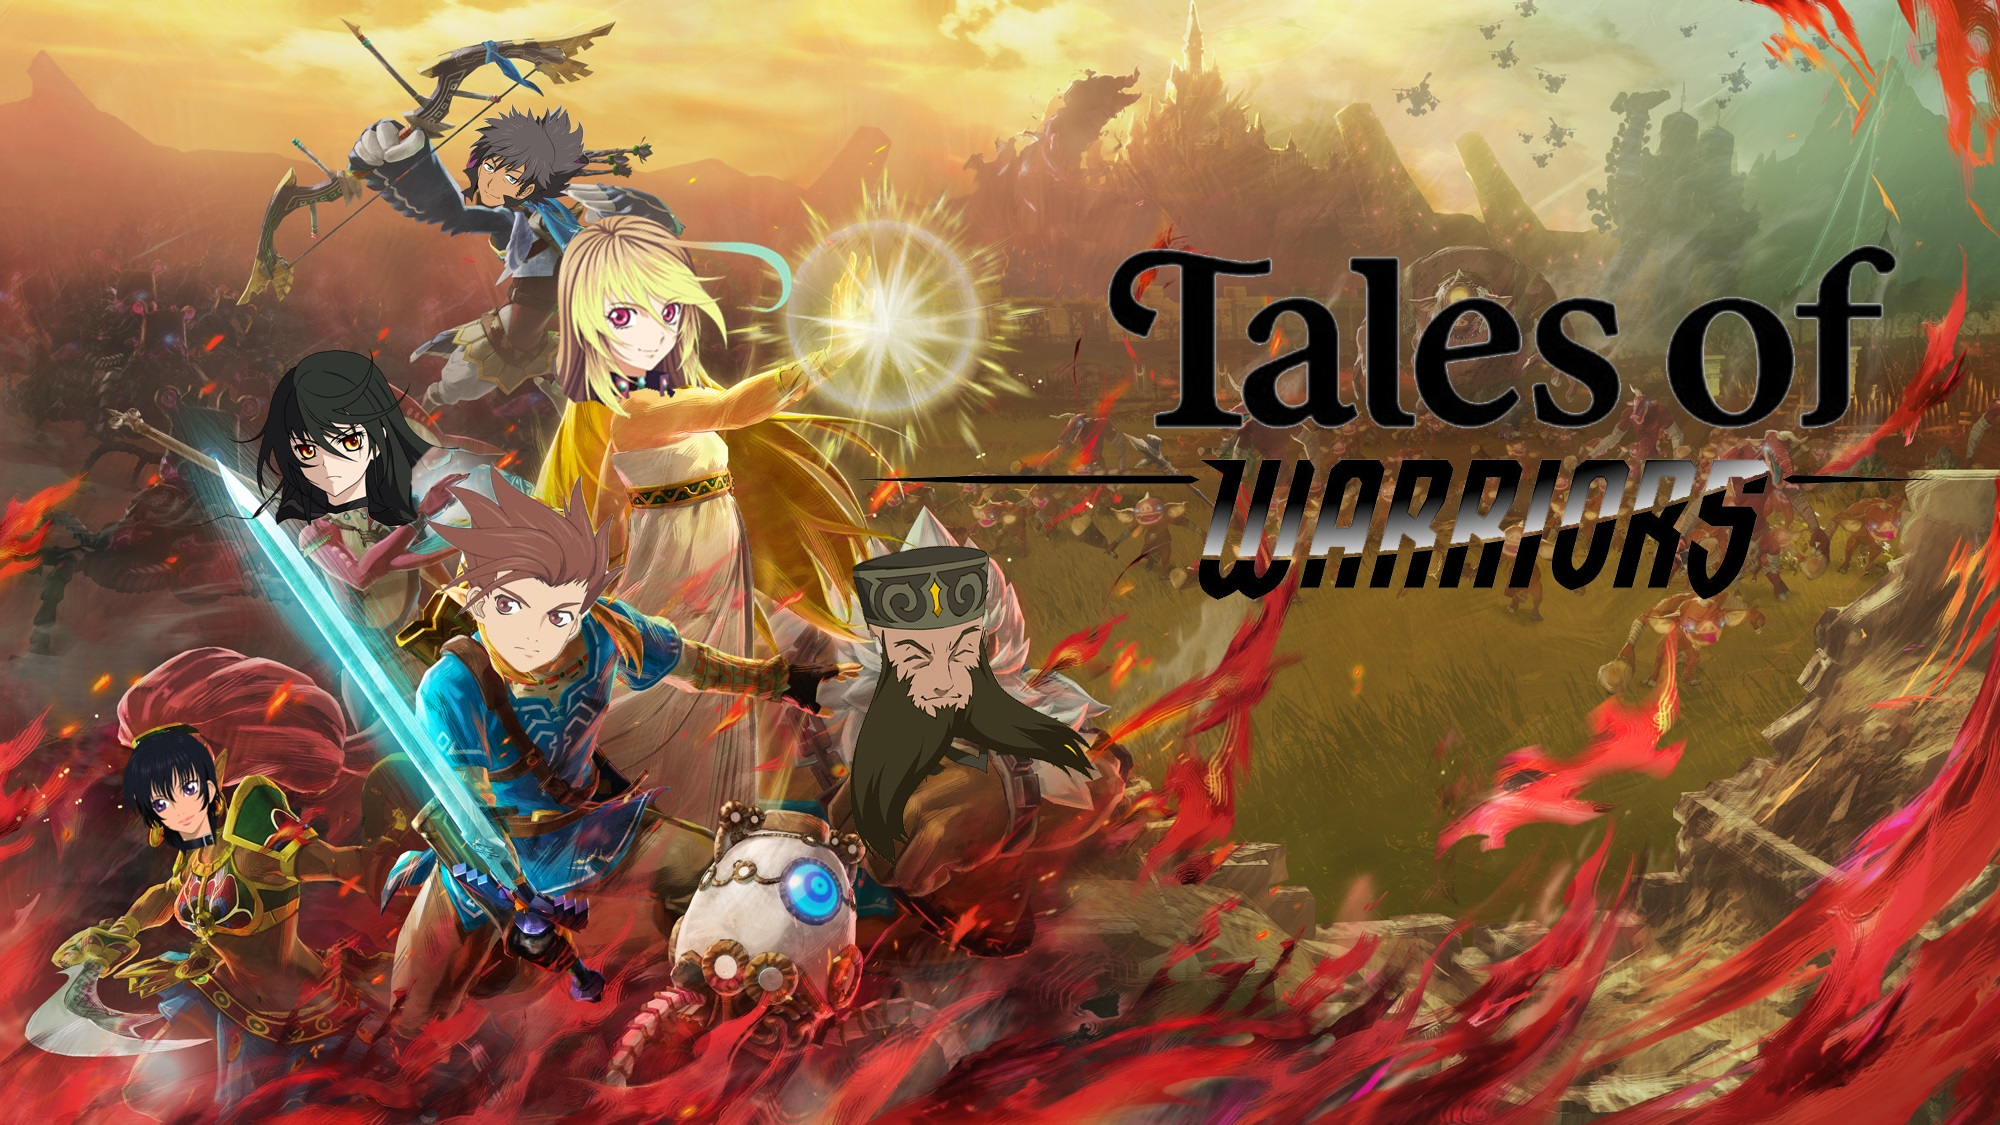 Tales of Warriors, un spin off de ensueño